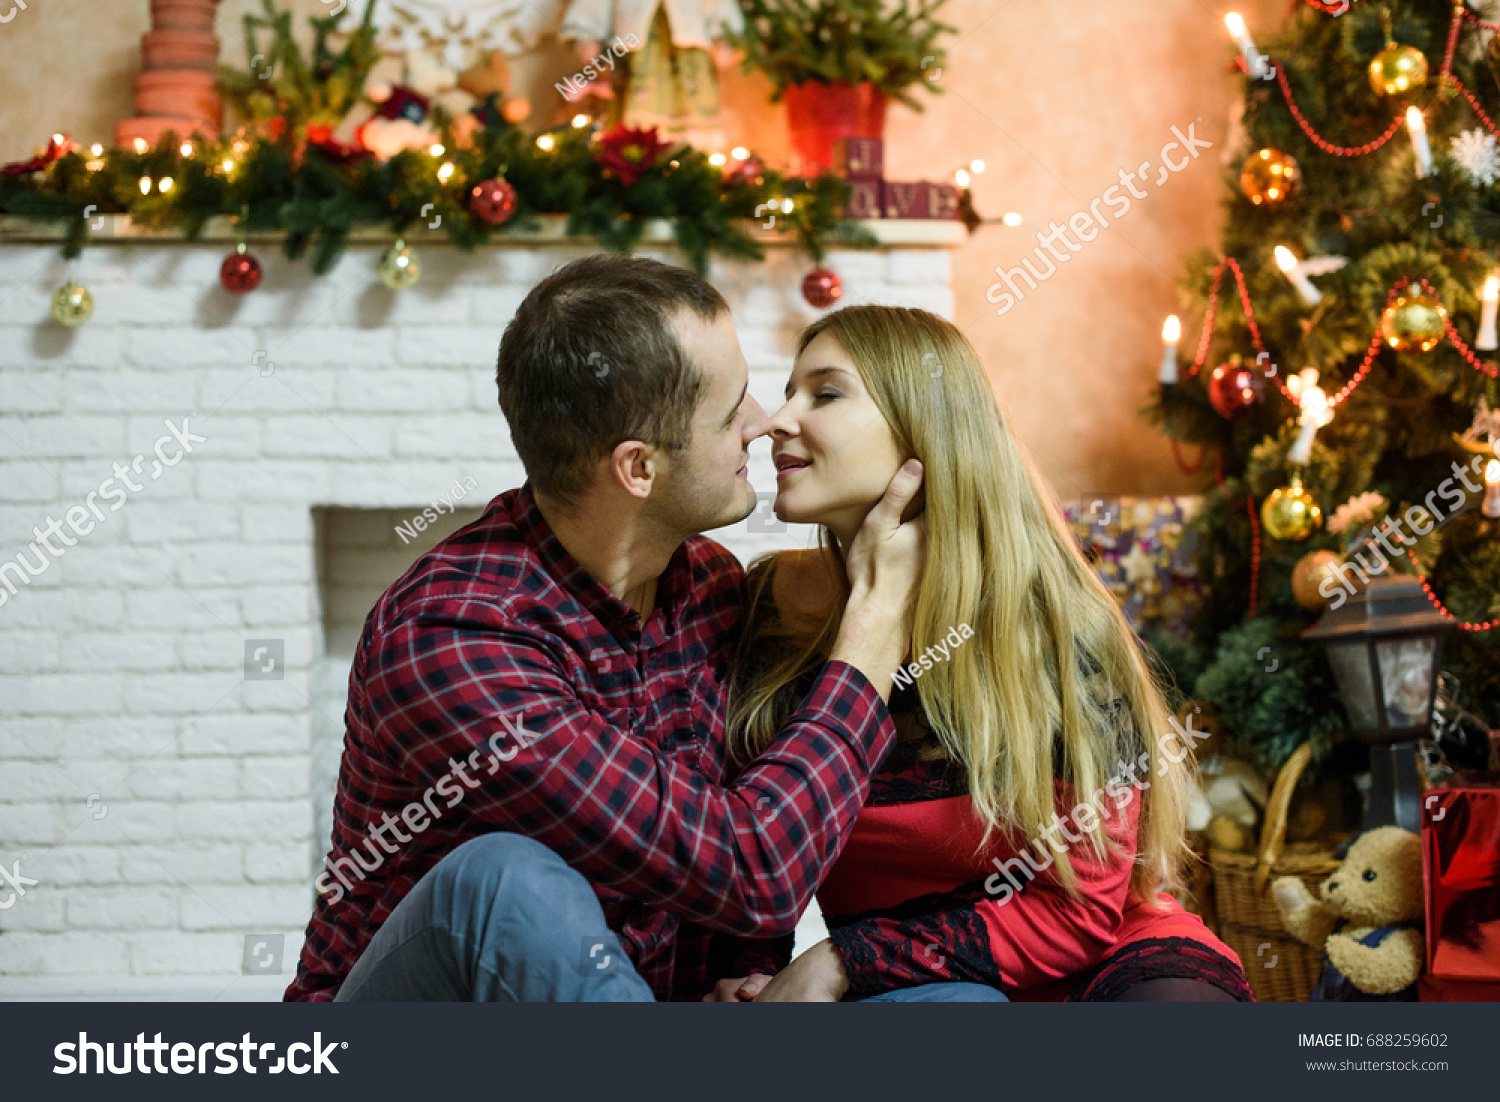 Happy Couple Christmas Gifts Relaxing Kissing Stock Photo (Edit Now ...